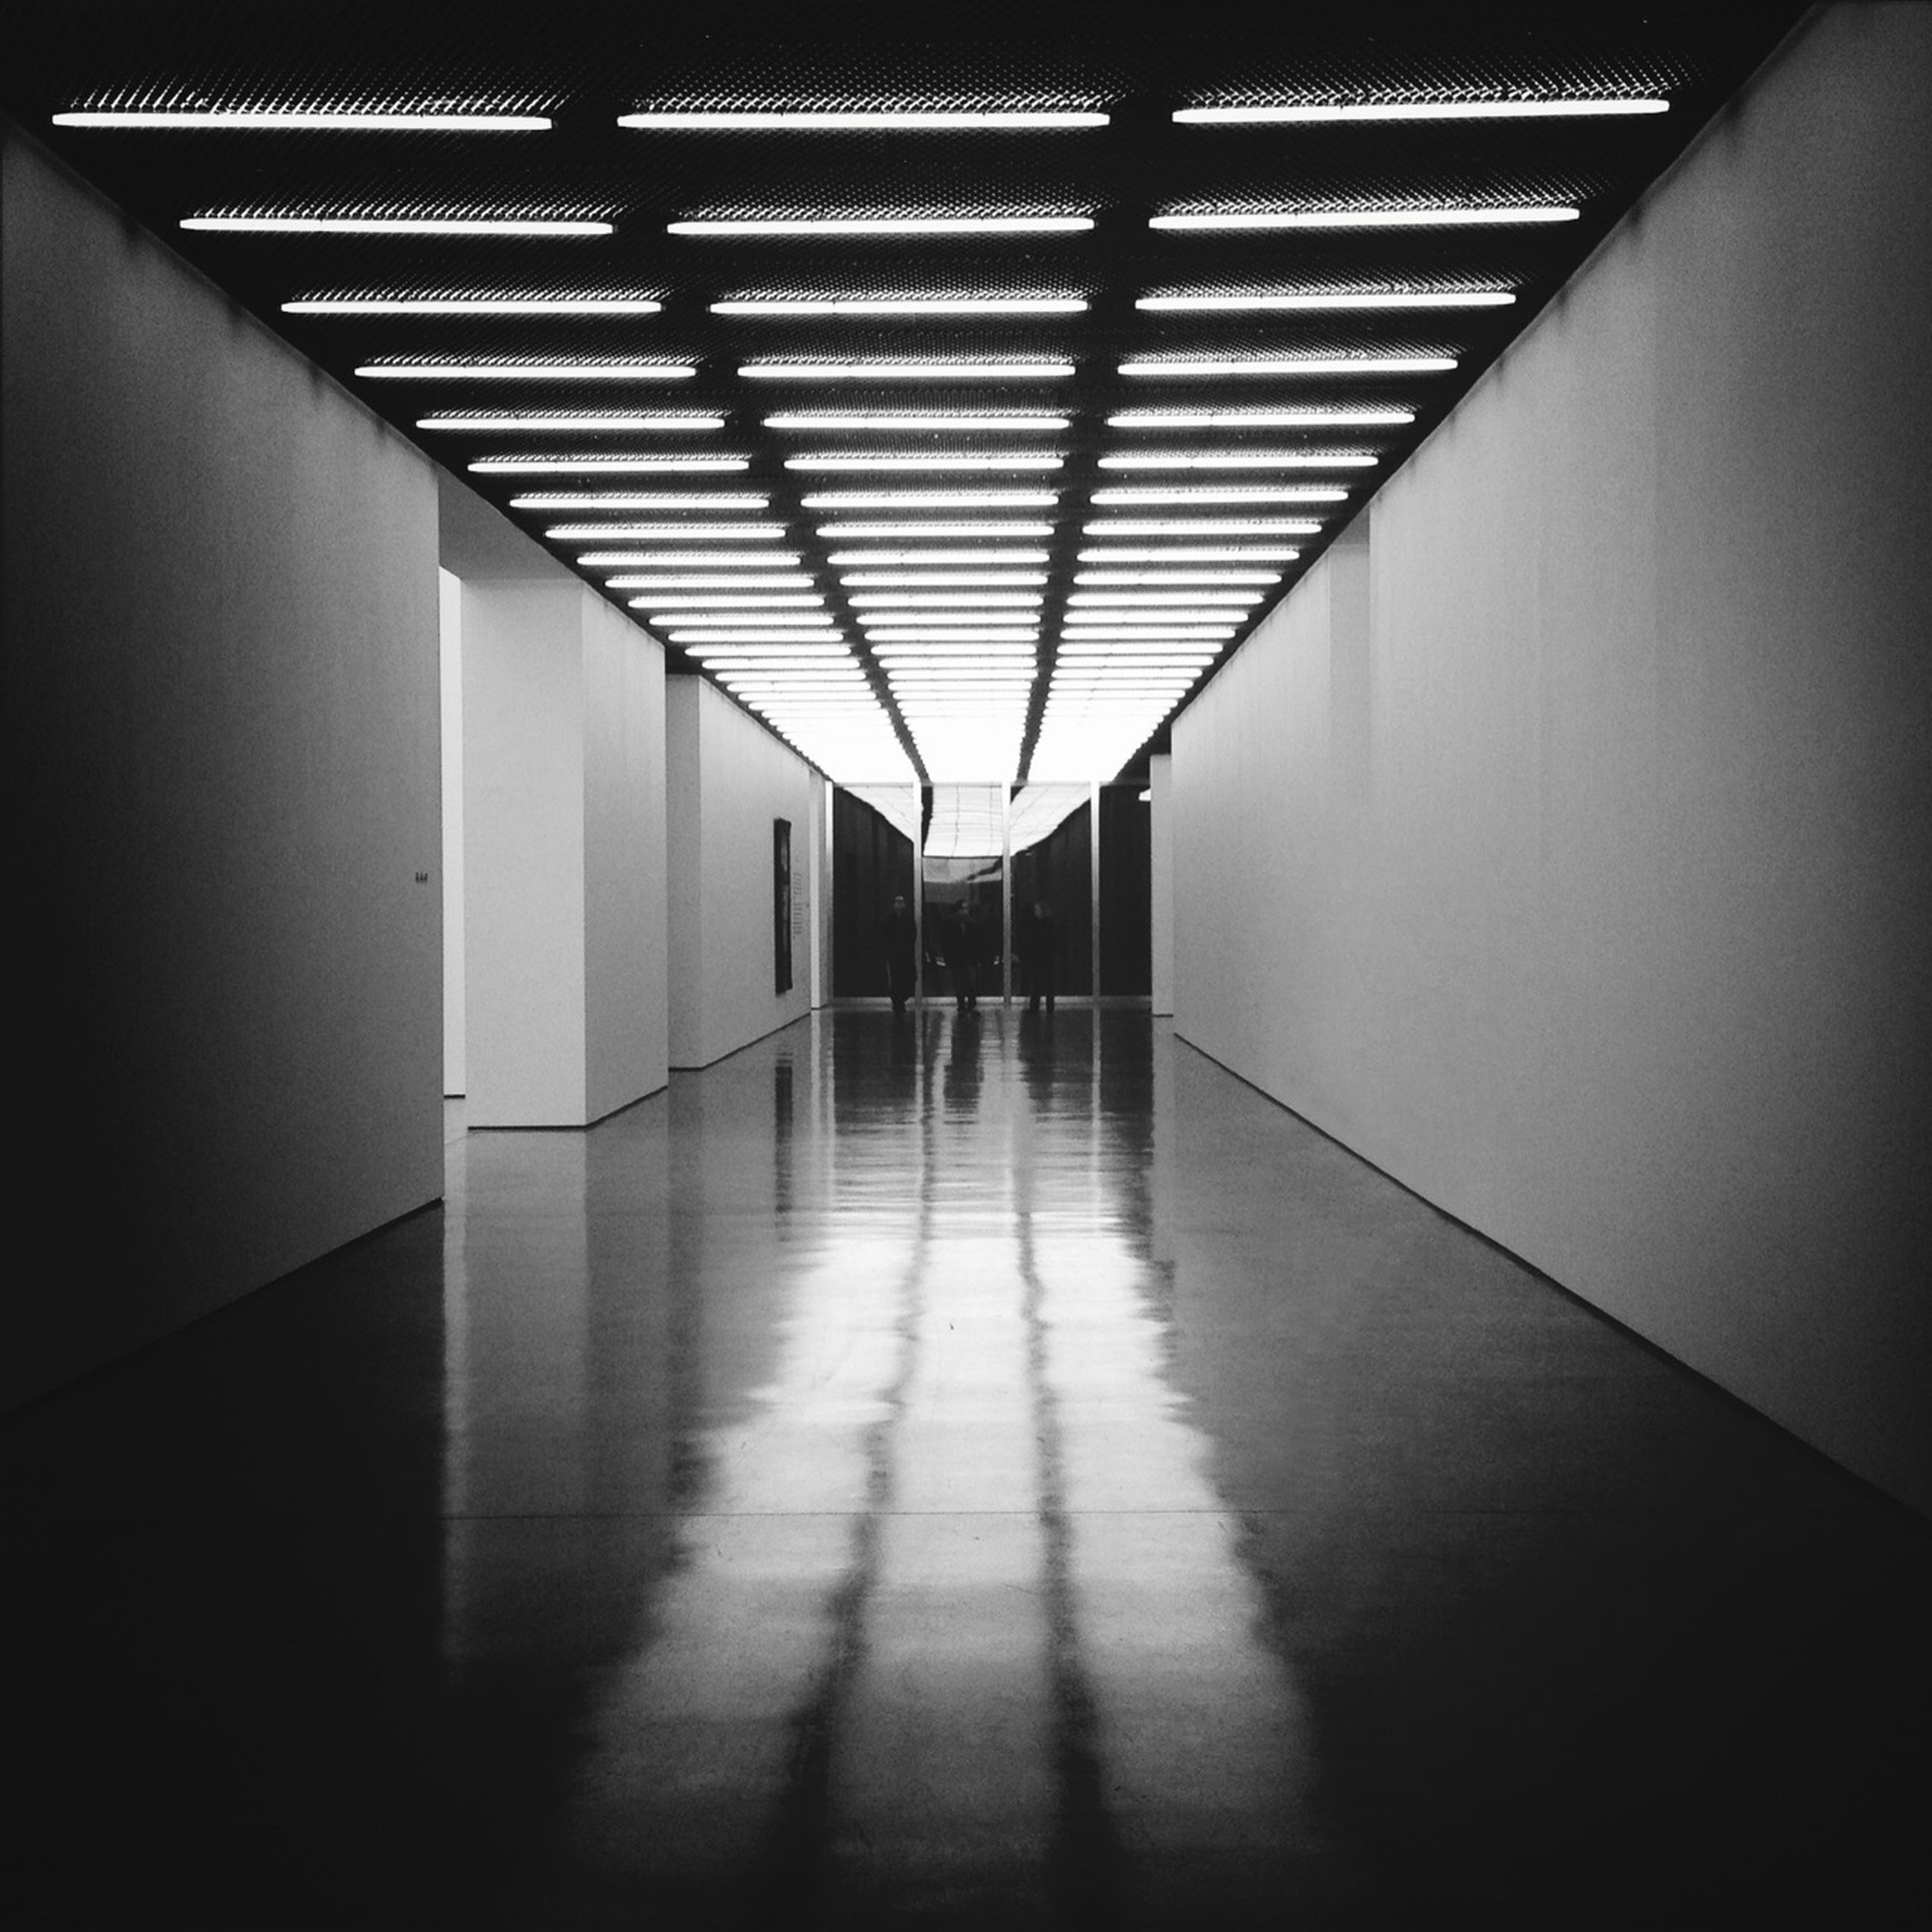 indoors, ceiling, corridor, illuminated, flooring, tiled floor, empty, architecture, built structure, lighting equipment, the way forward, absence, diminishing perspective, wall - building feature, floor, wall, tile, pattern, no people, interior